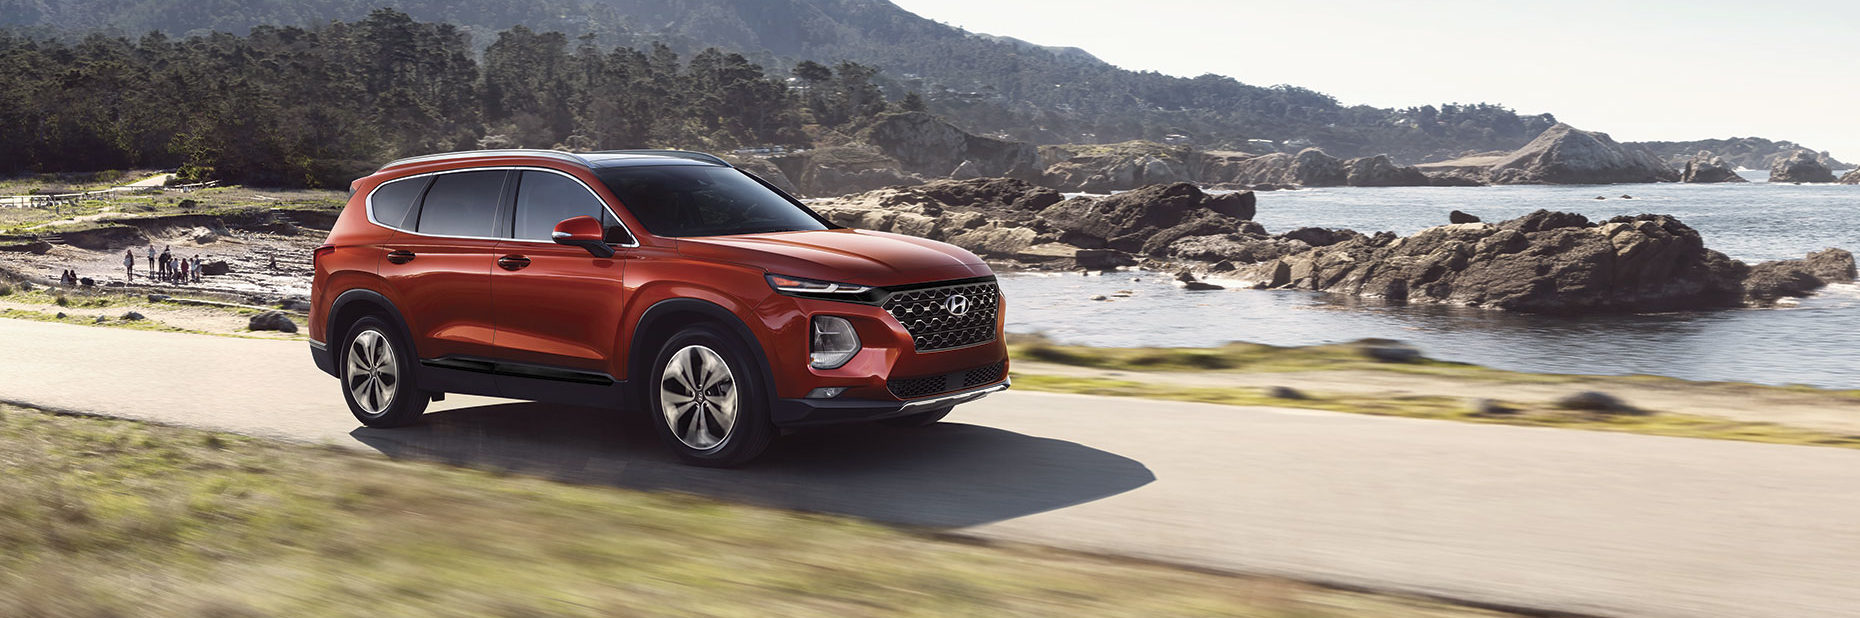 Red Hyundai Santa Fe in motion with beach and body of water in background